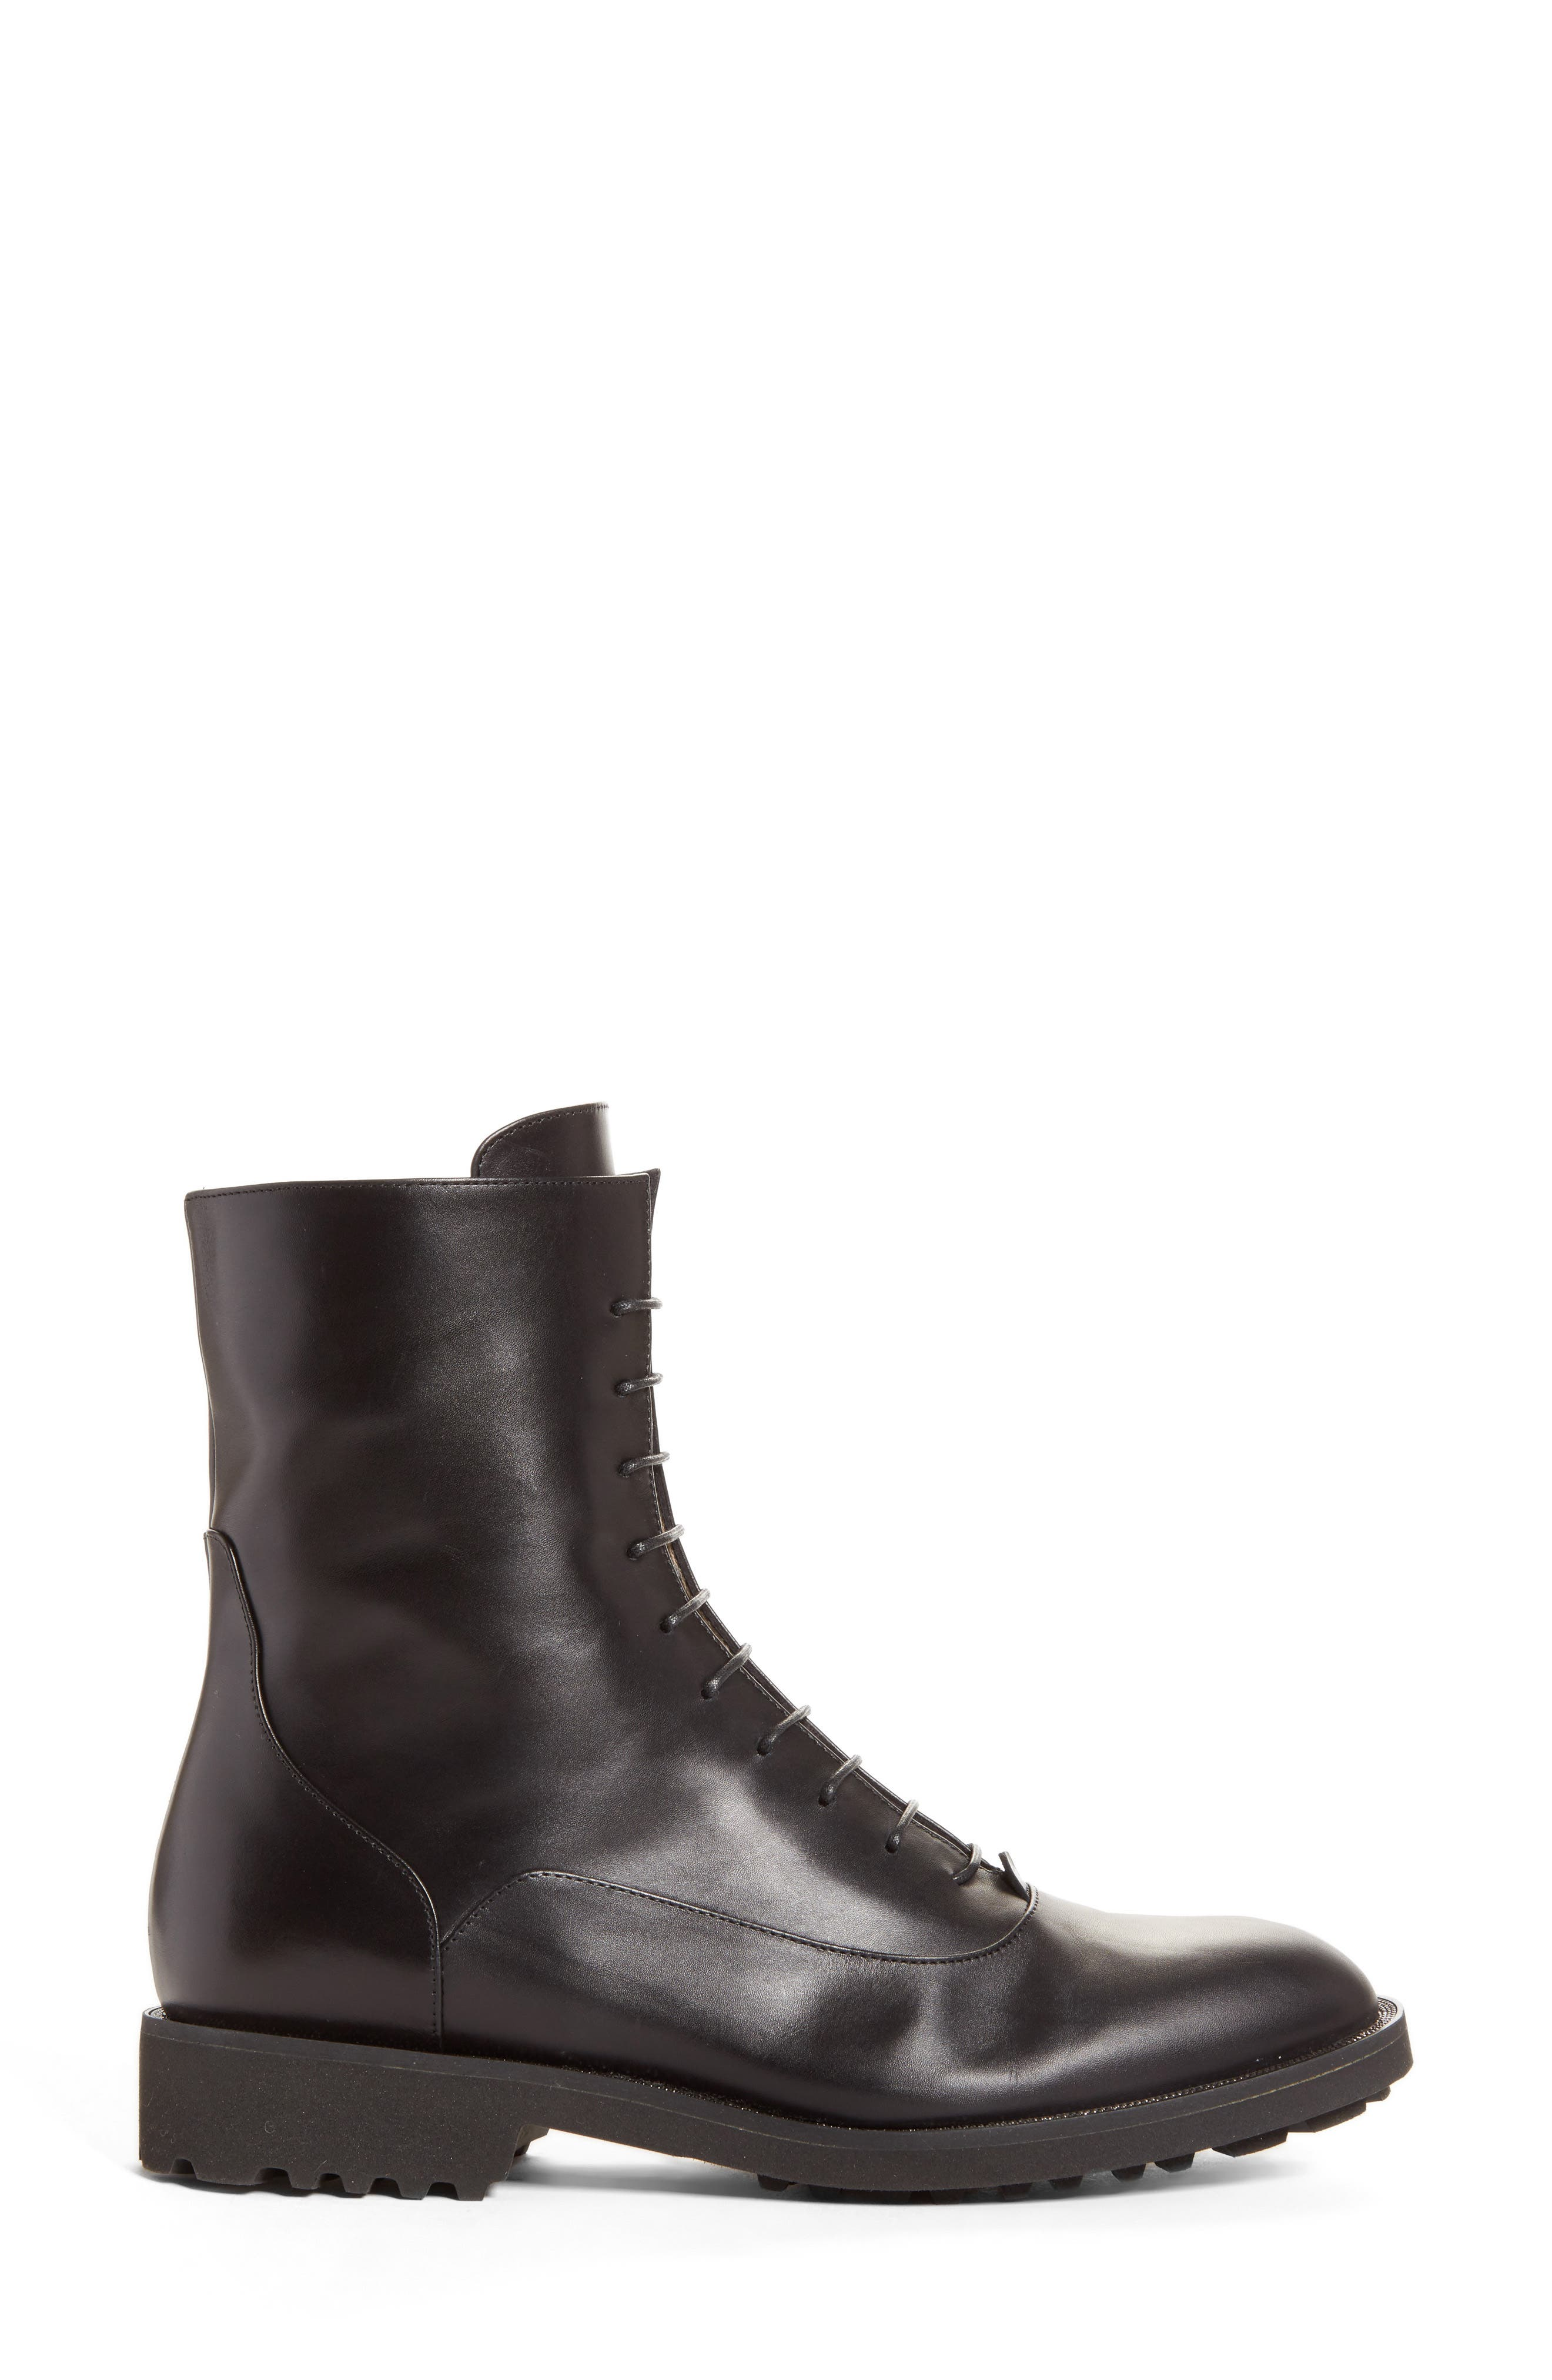 Ludovica Combat Boot,                             Alternate thumbnail 3, color,                             001